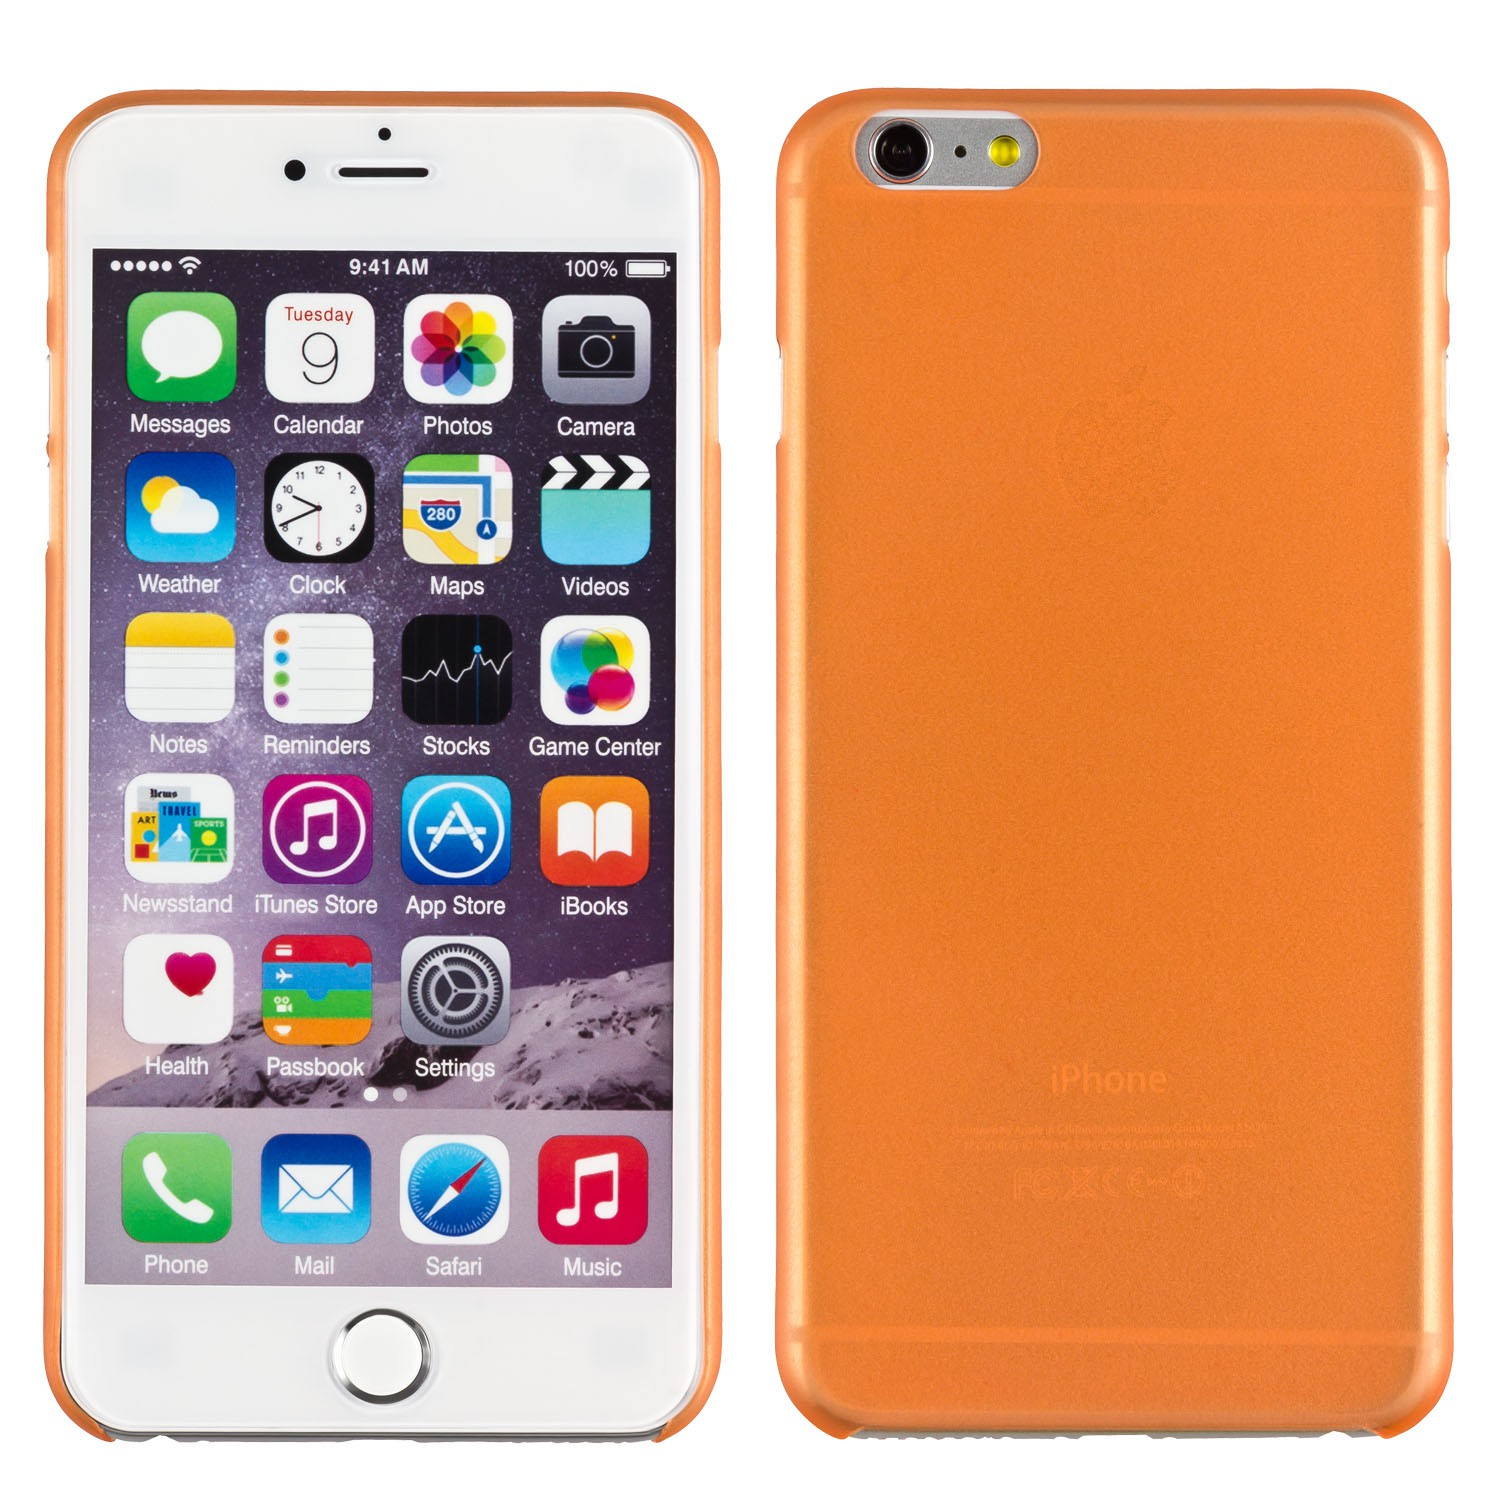 Yemota Pro Slimcase iPhone 6 plus - Orange